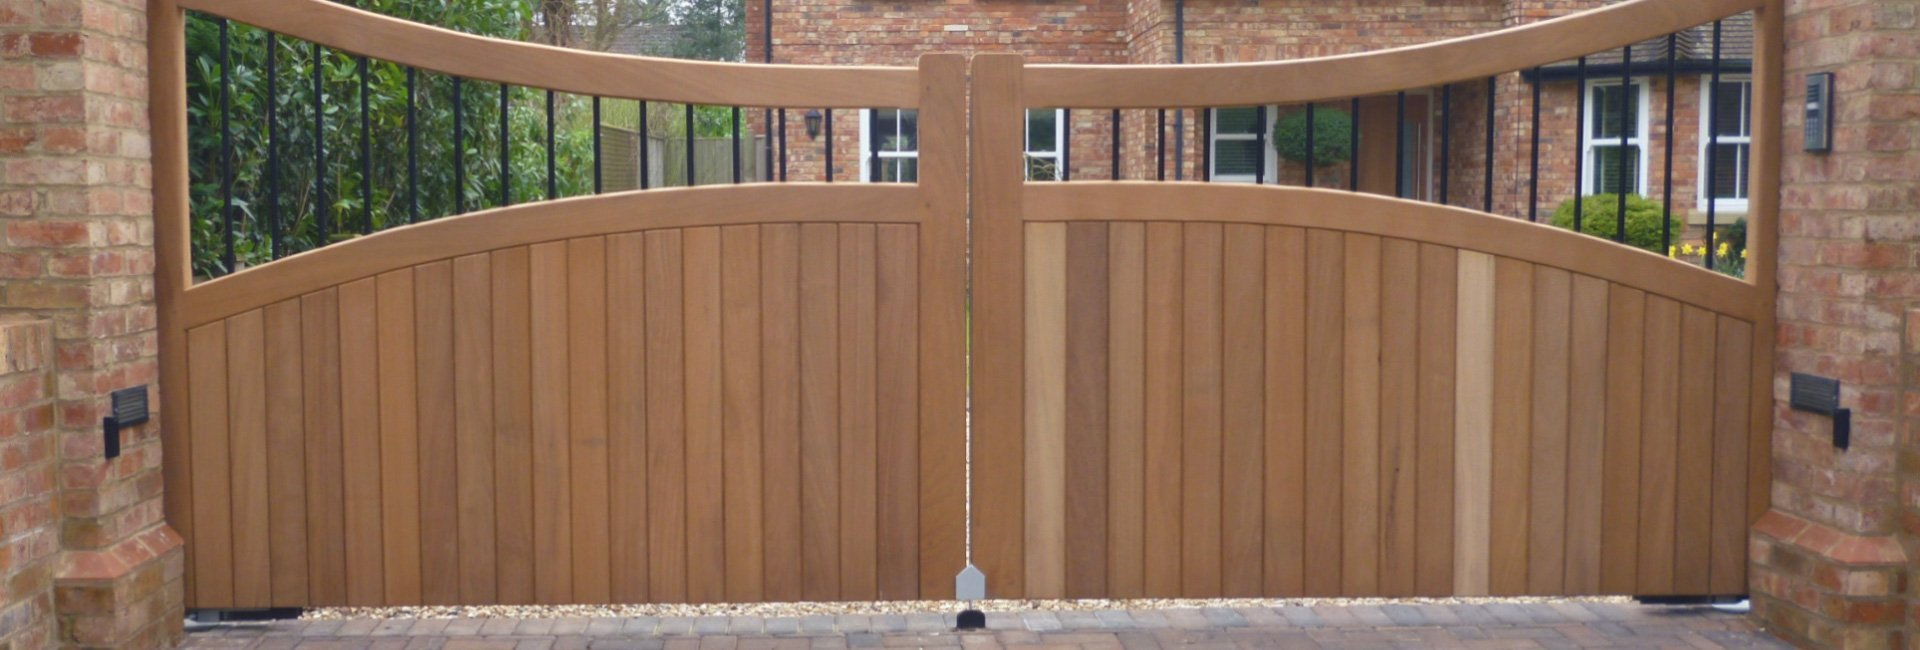 thick wood gate with dipped curve towards centre